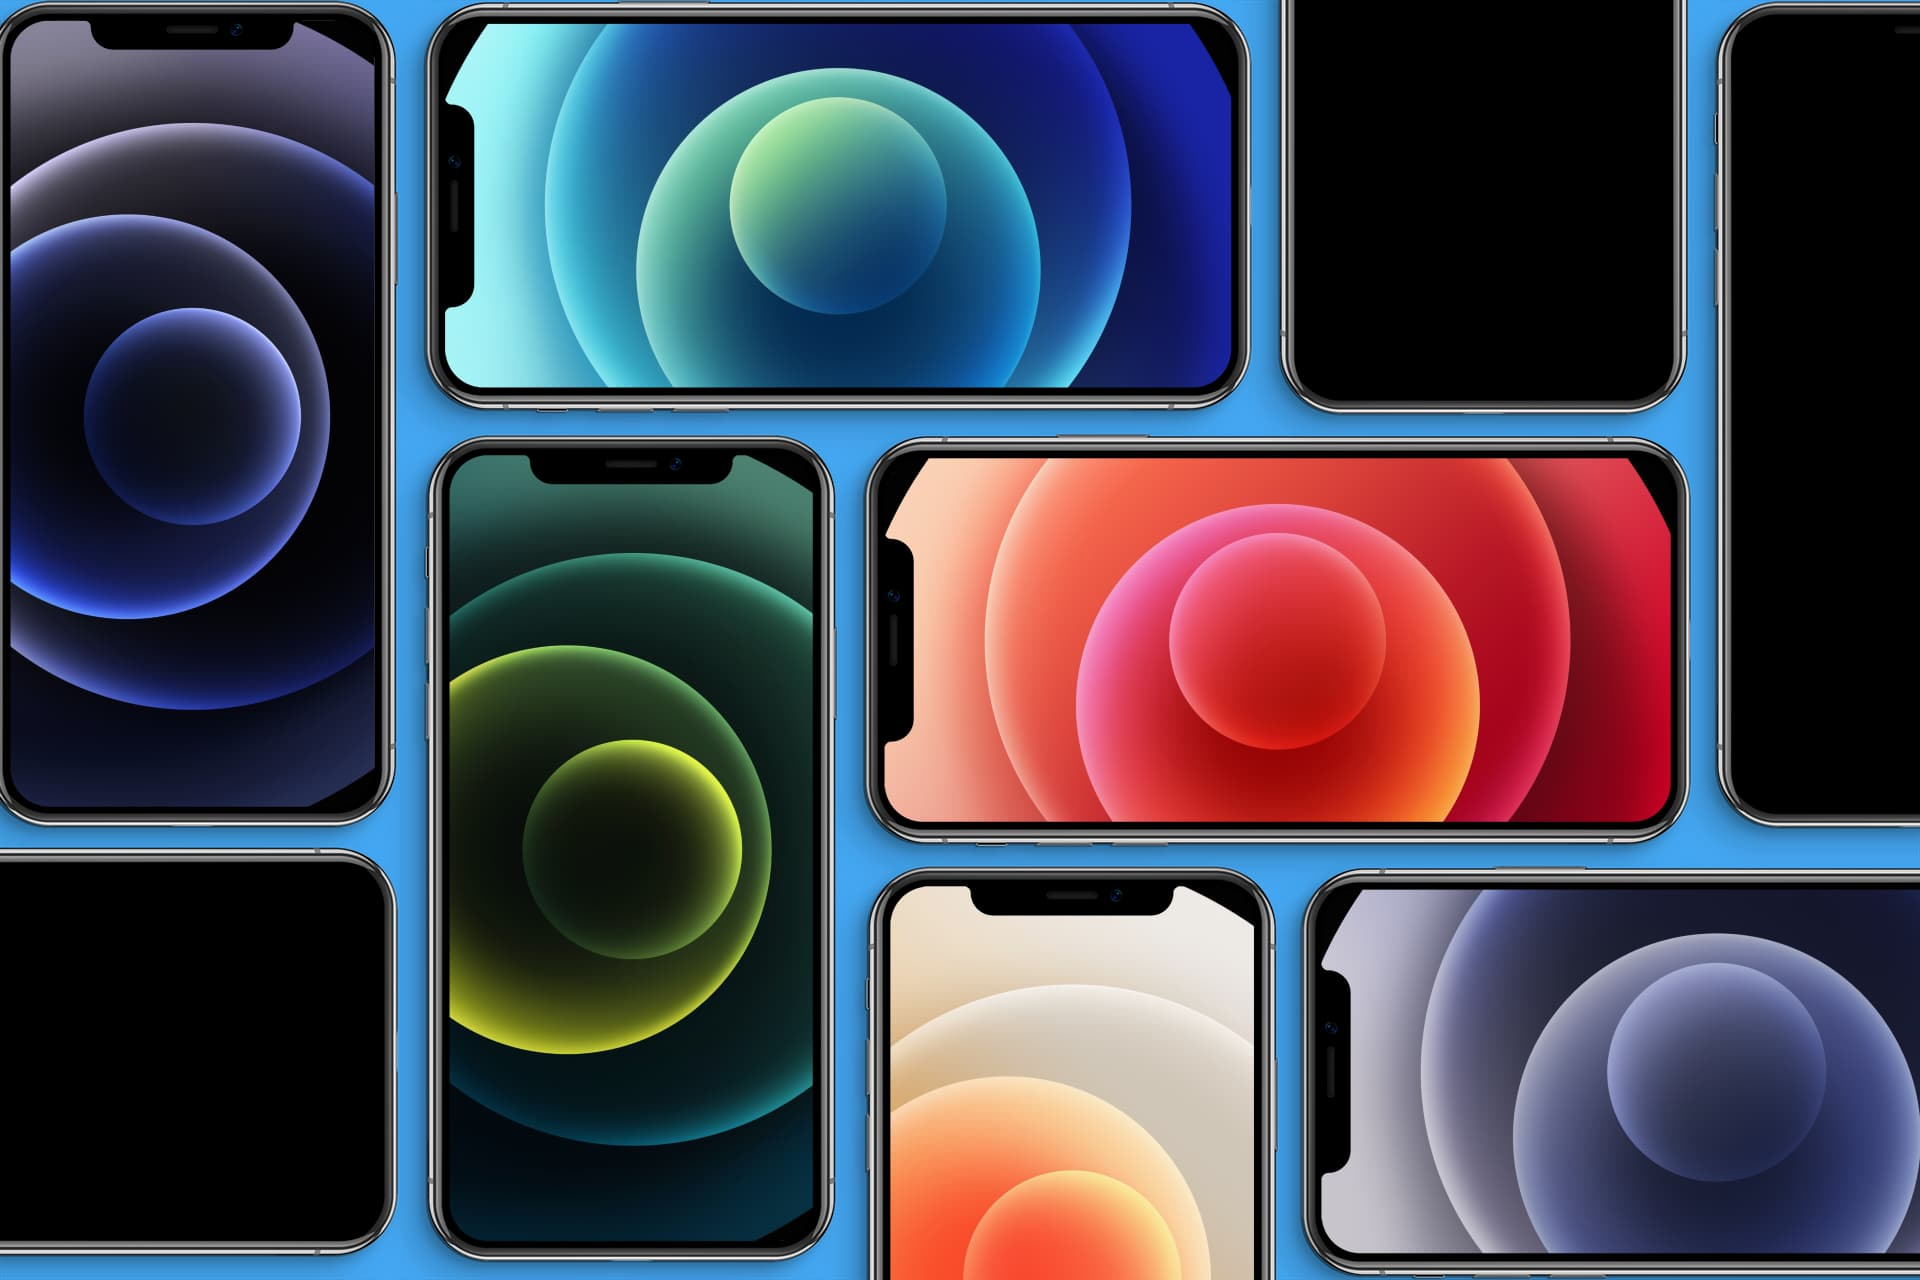 Download the iPhone 12 wallpapers here 1920x1280